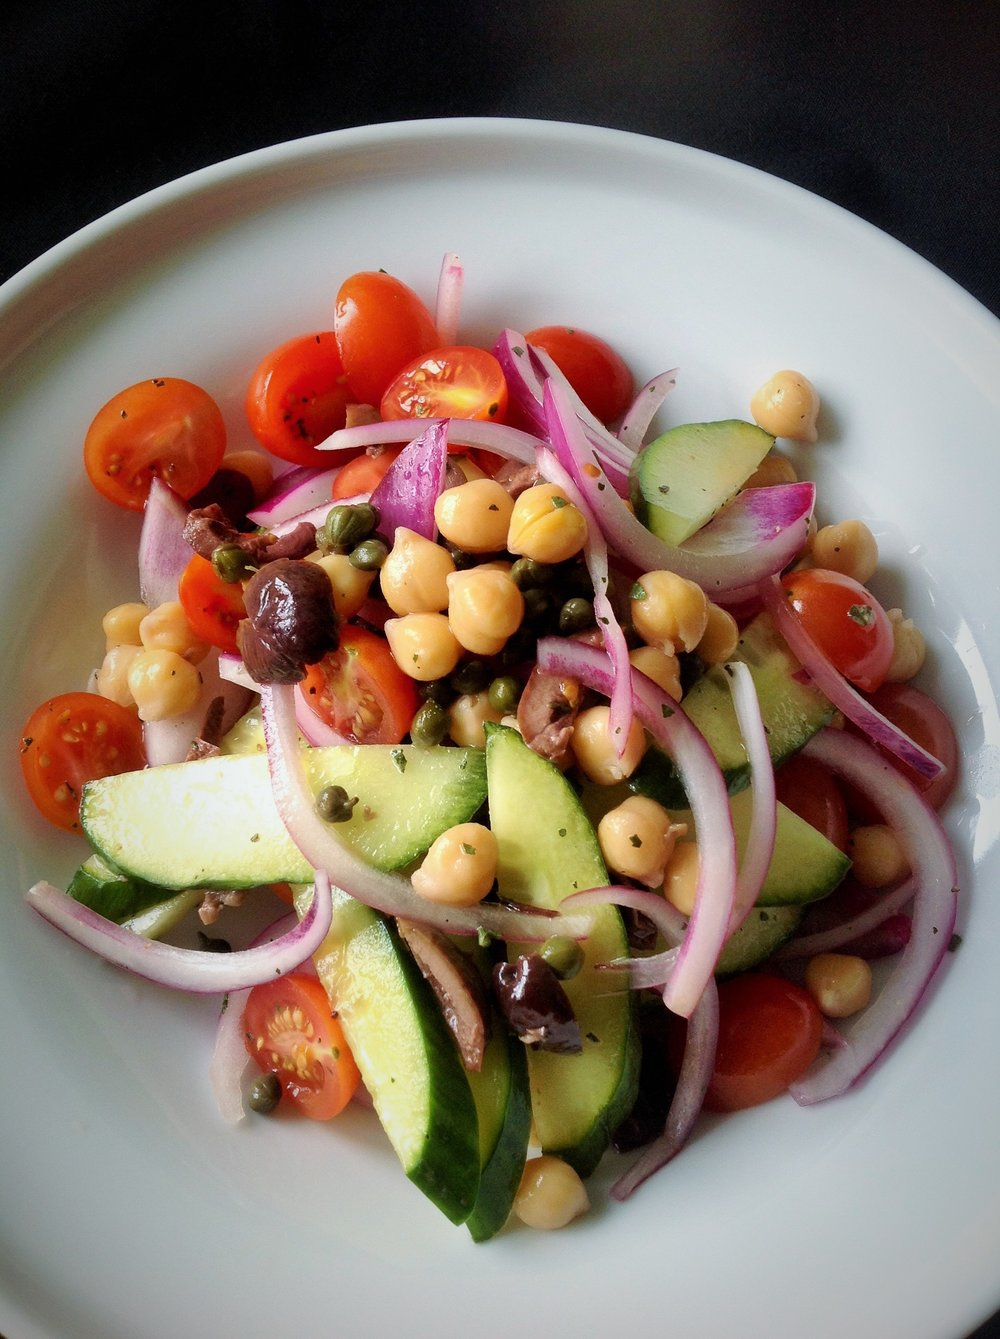 Big 'Ole Italian Salad - Healthy, Gluten-Free, Grain-Free, Oil-Free, Plant-Based, Vegan